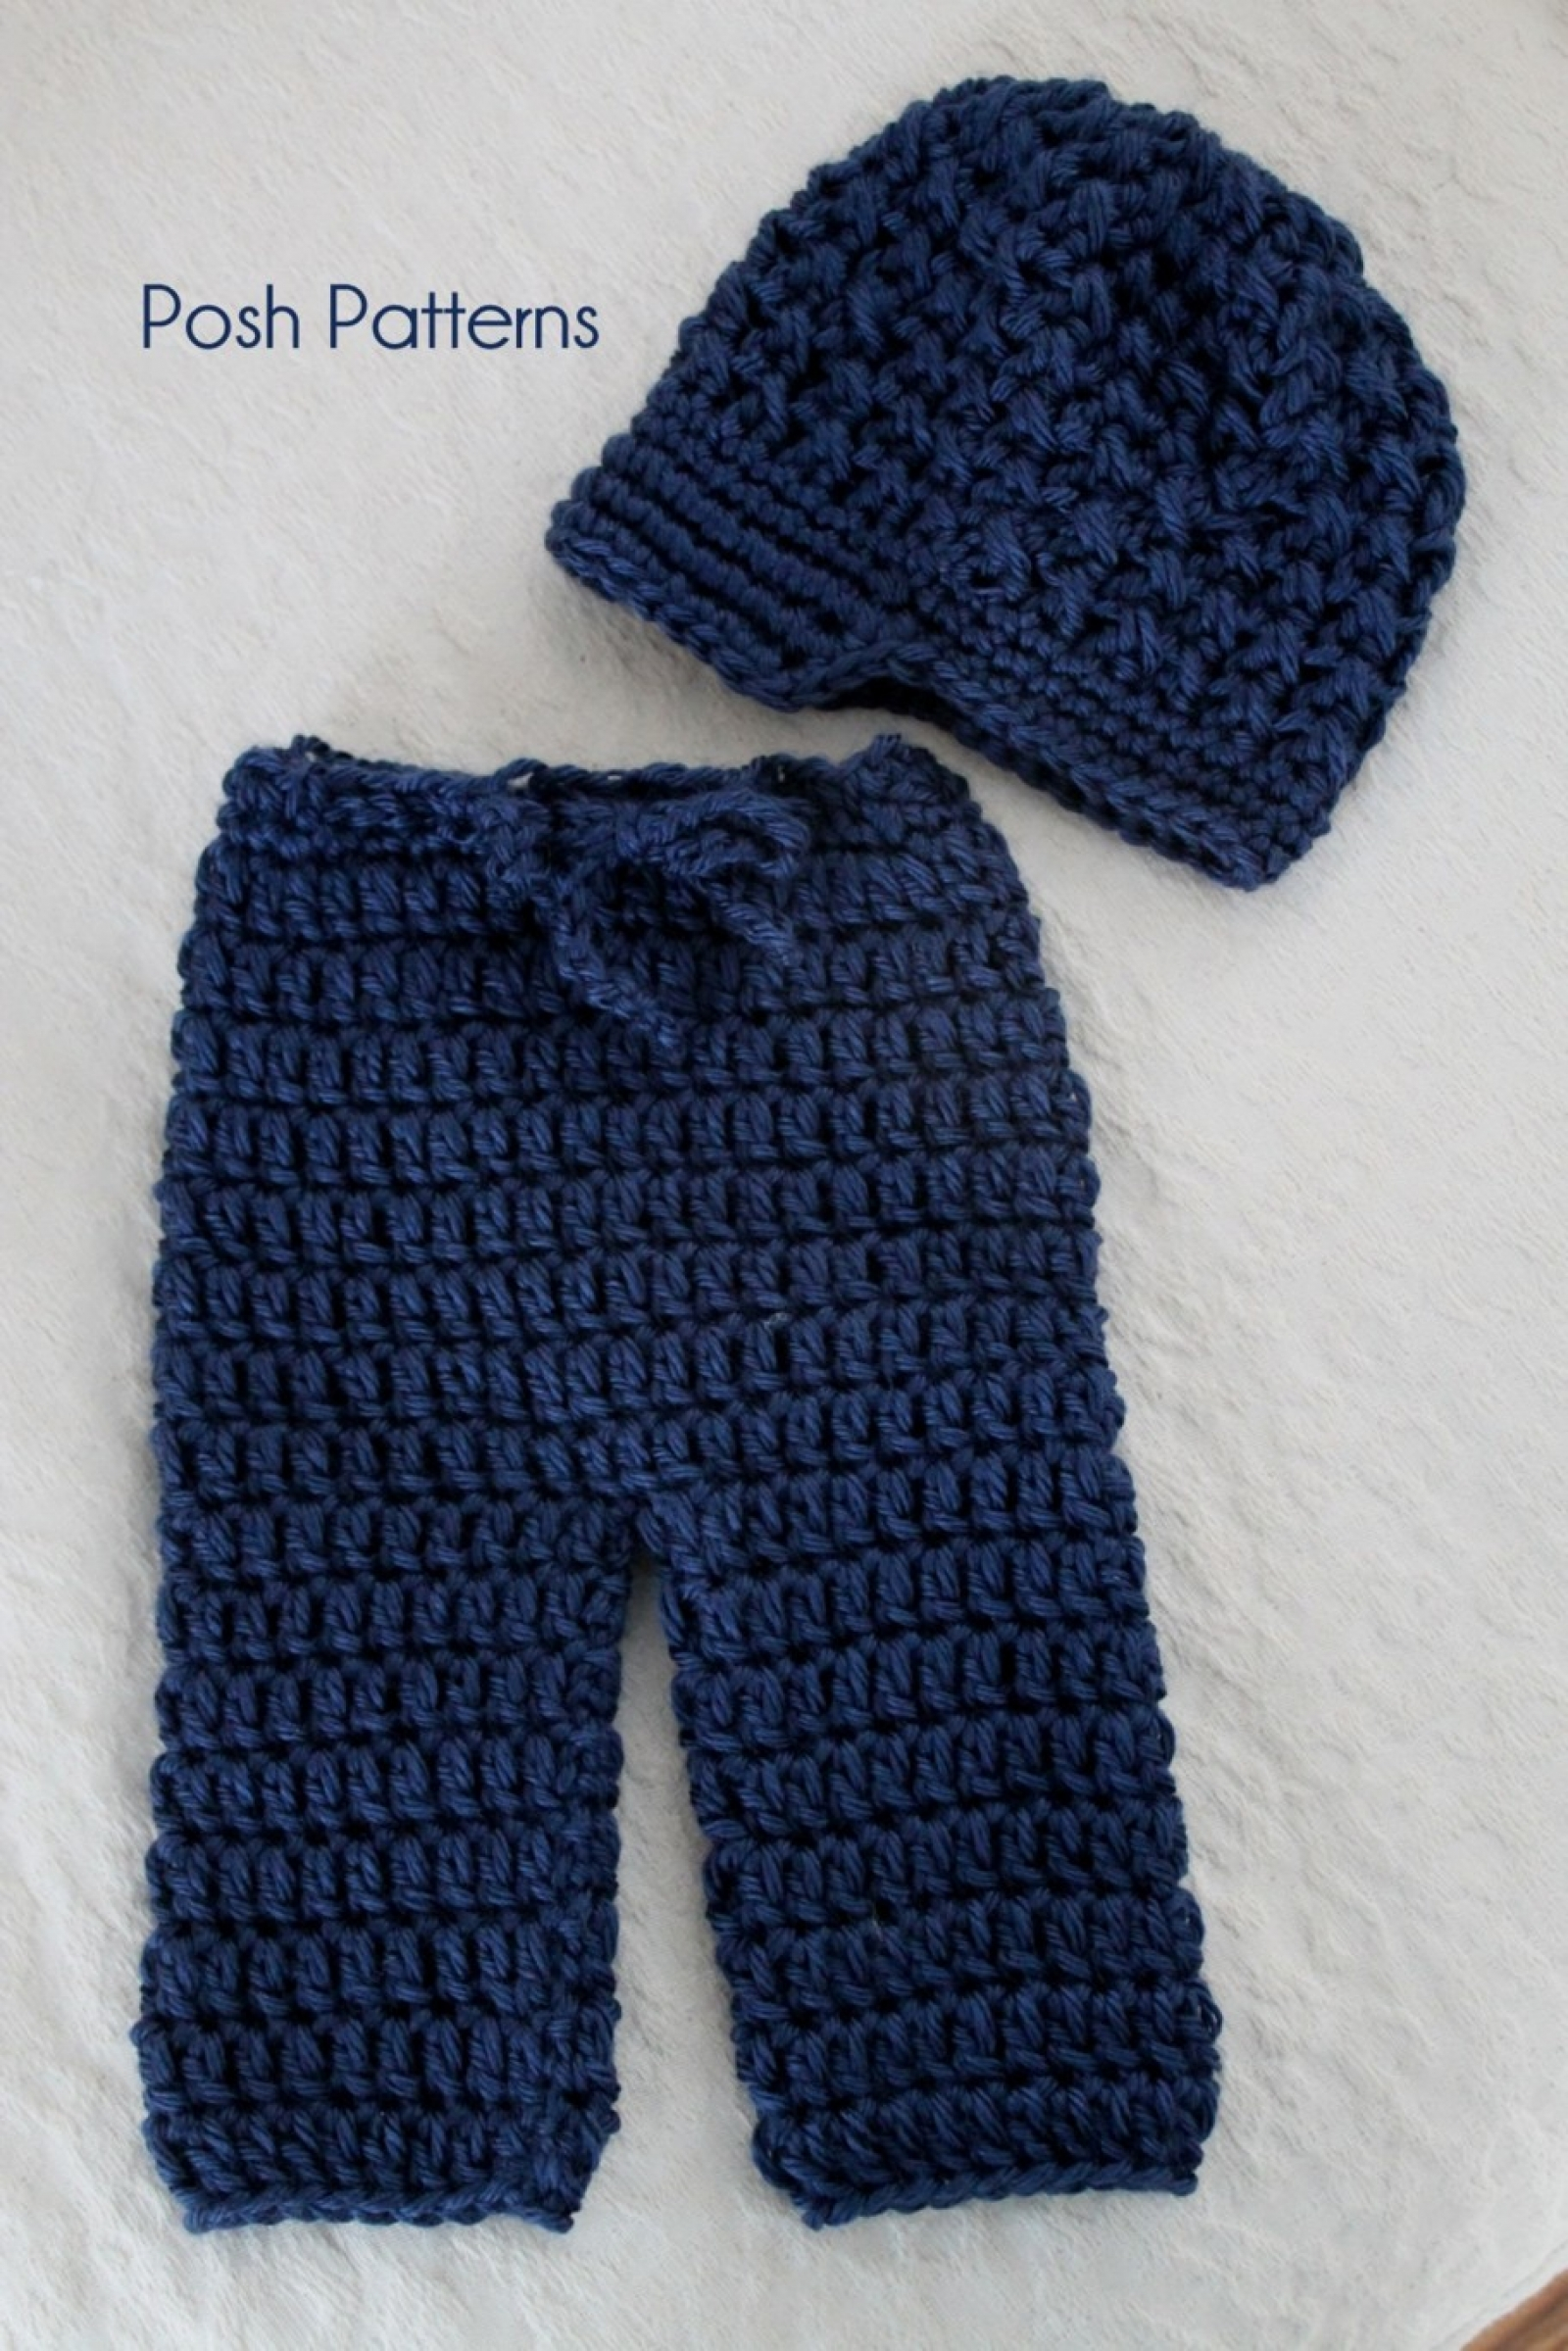 Crochet patterns newborn pants longies and newsboy visor hat crochet pattern baby pants and newsboy hat bankloansurffo Image collections